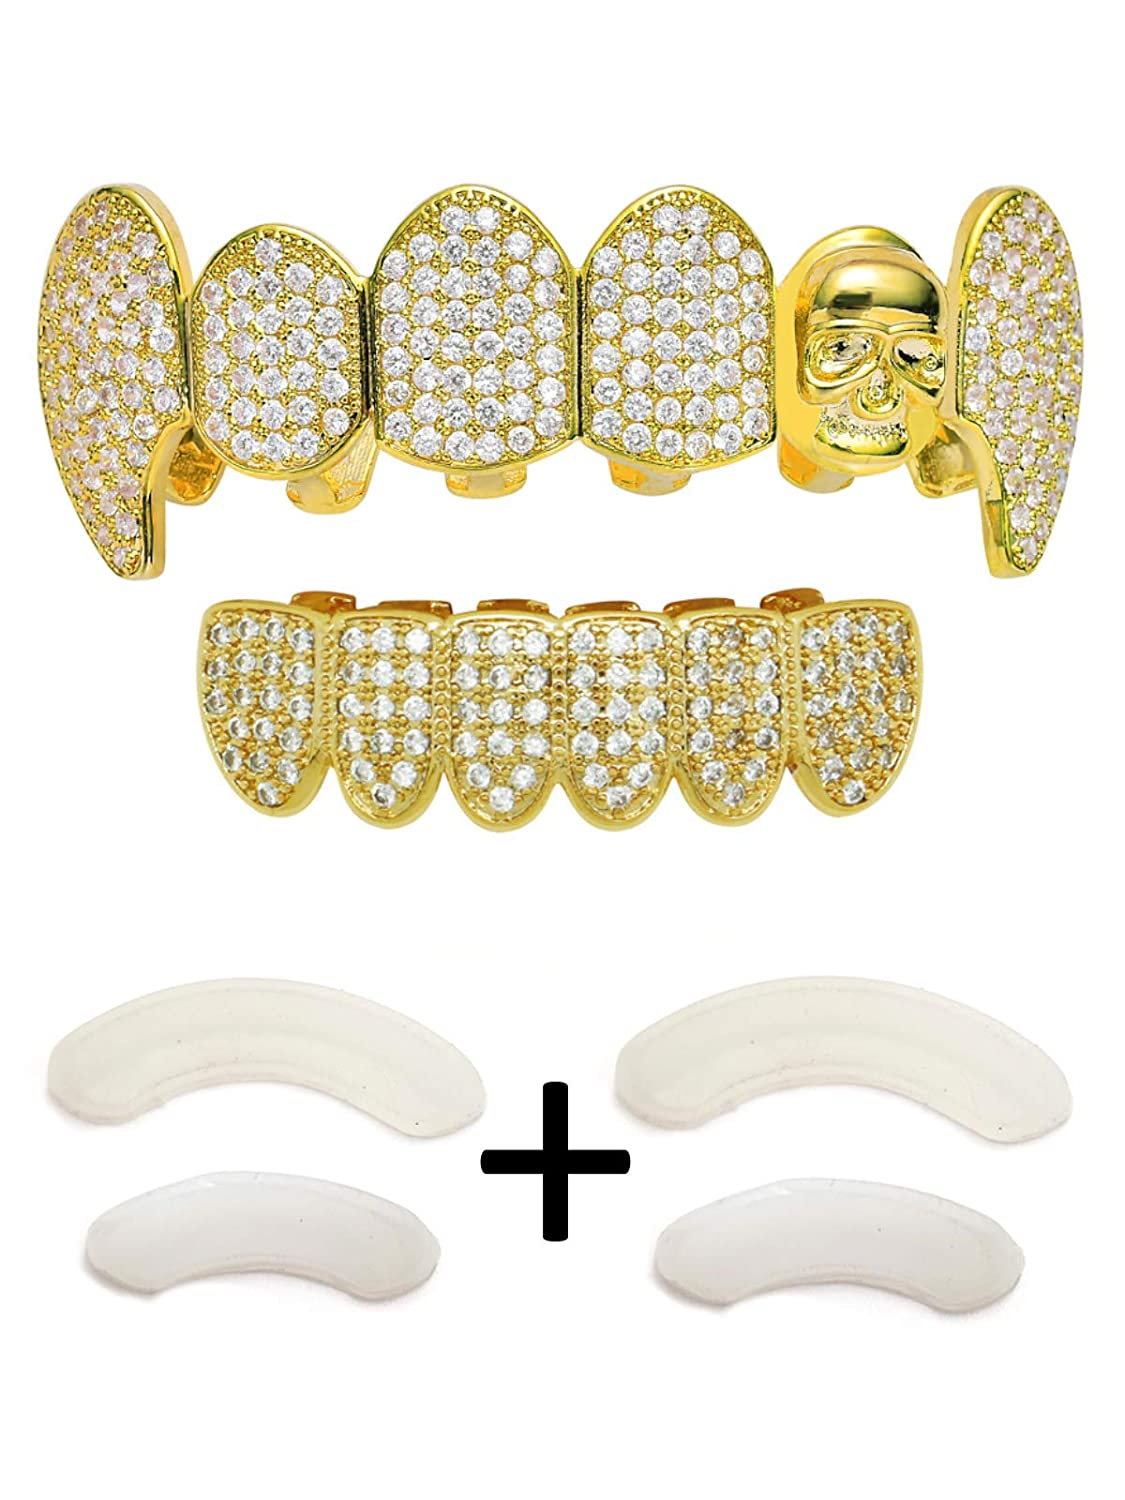 TSANLY Grillz Skull Fangs Grills Iced Out CZ Diamond Top&Bottom Set Vampire Grill Hip Hop Grillz Gift for Halloween + 2 Extra Molding Bars Charly Shop